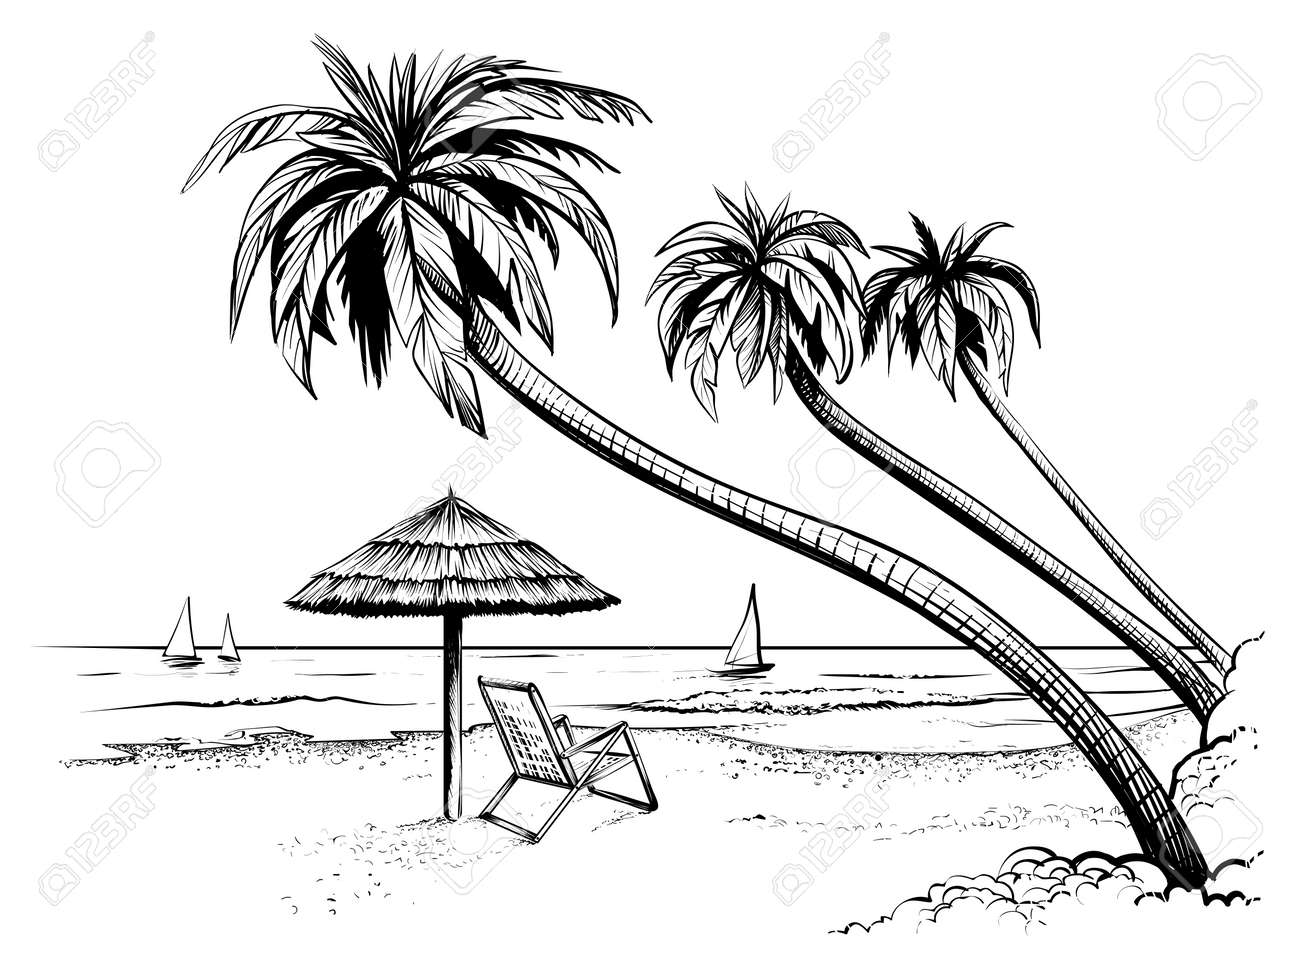 Charming Ocean Or Sea Beach With Palms, Sketch. Black And White Vector Illustration  Of Sea